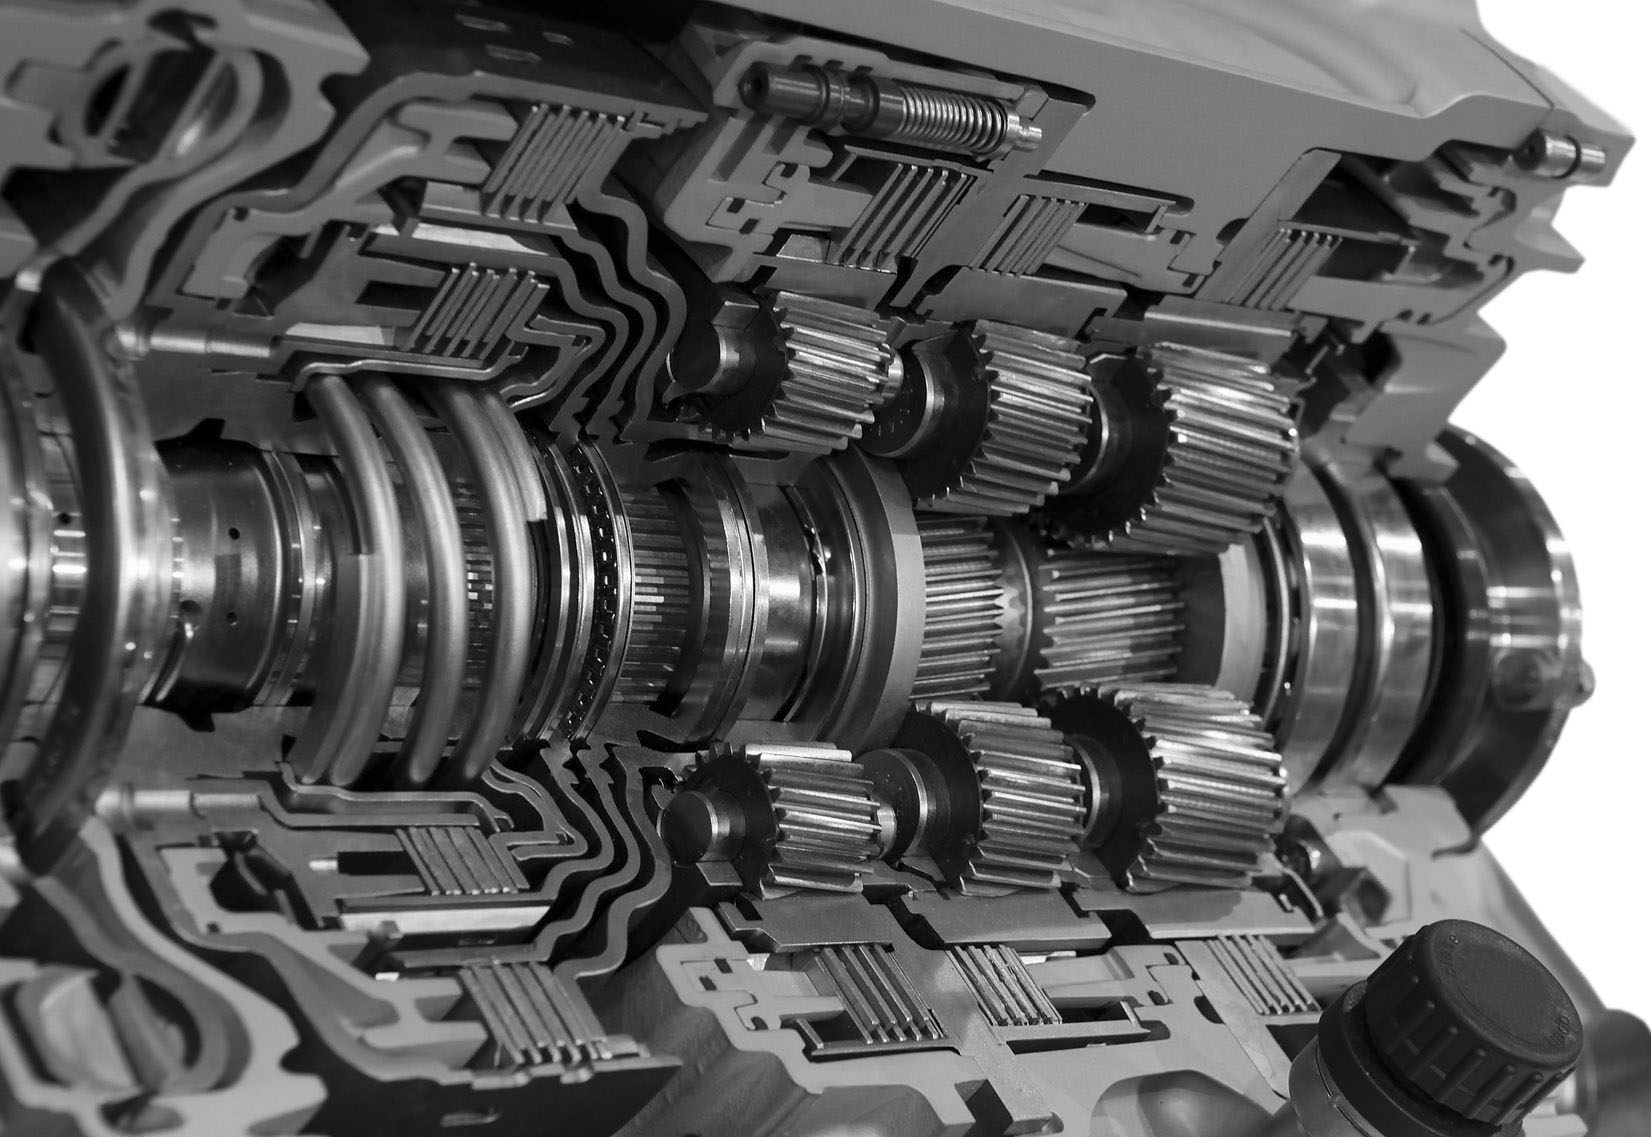 10689486 - automotive transmission gearbox with lots of details